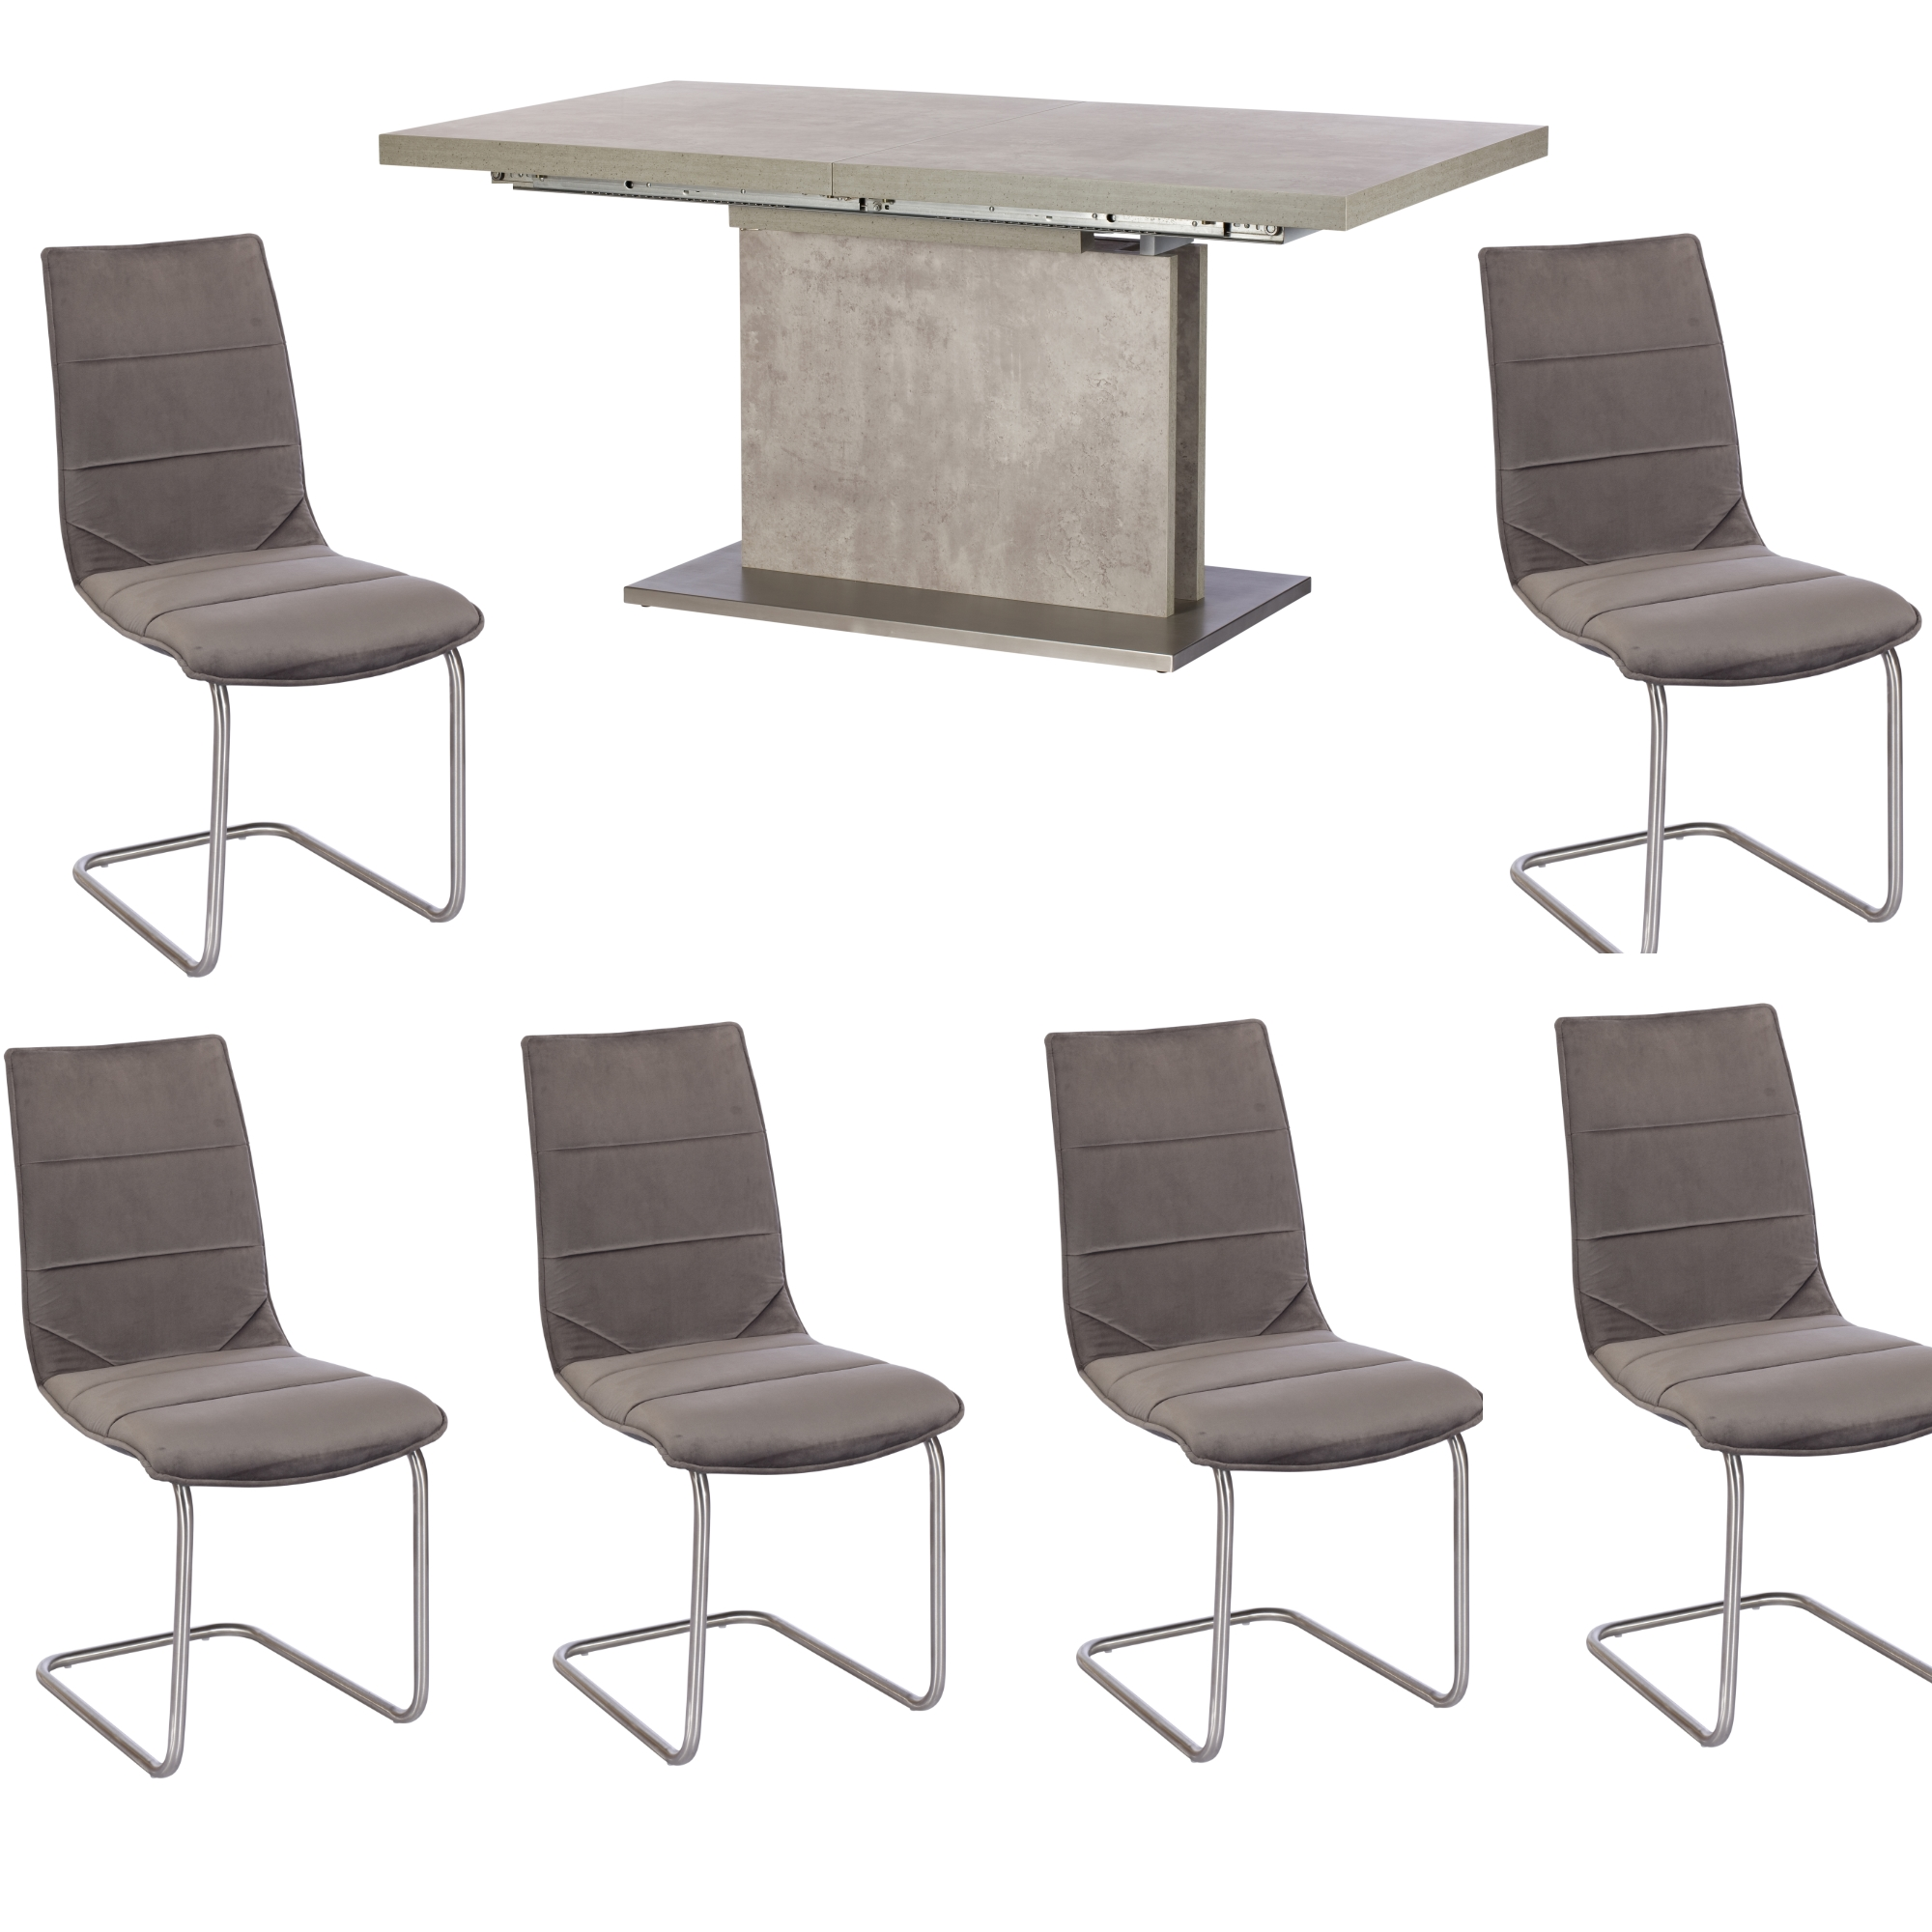 Pella Concrete Effect Extending Dining Table & 6 Chairs